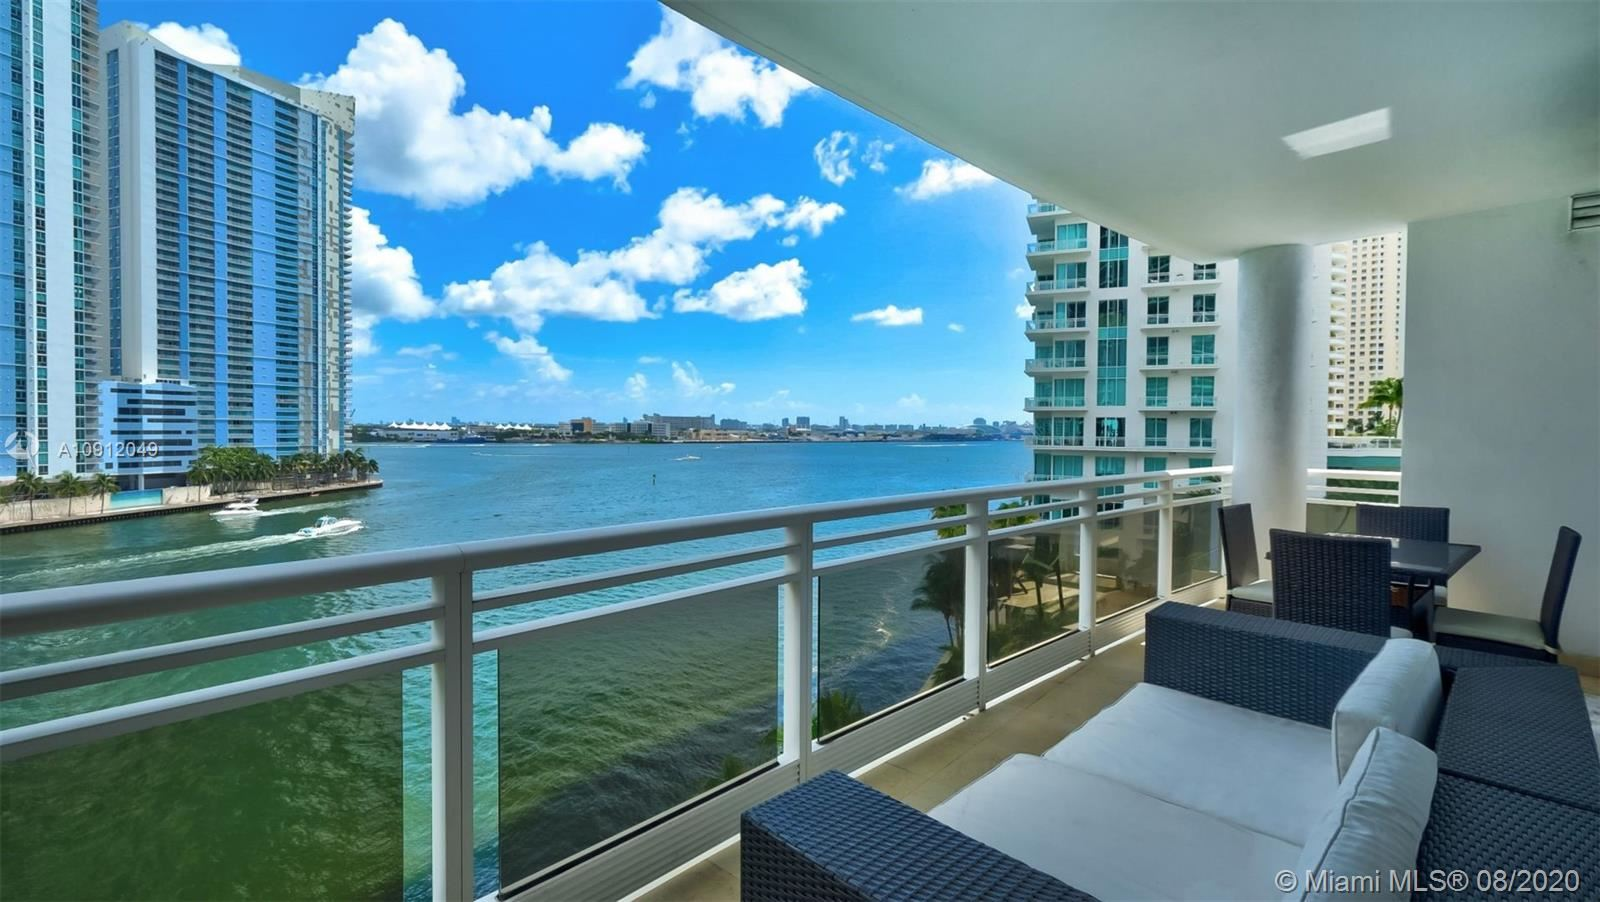 901 Brickell Key Blvd #707, Miami, FL 33131 - #: A10912049